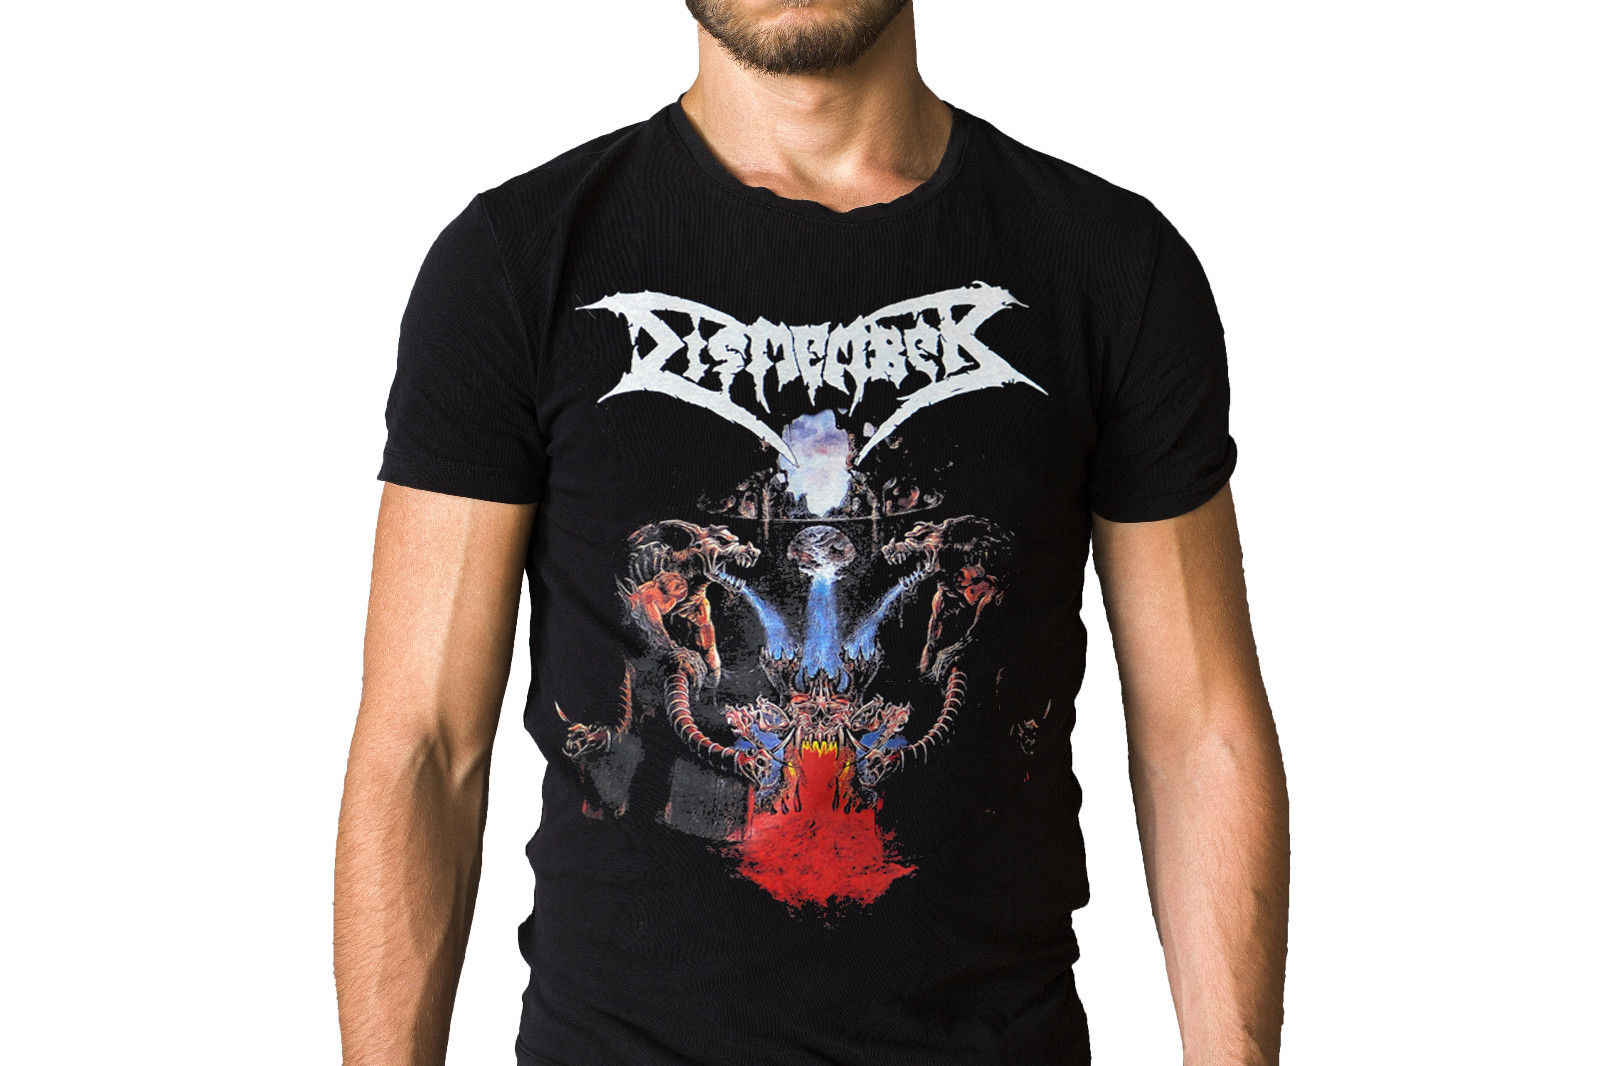 Dismember Like An Ever Flowing Stream 1991 Album Cover T Shirt image